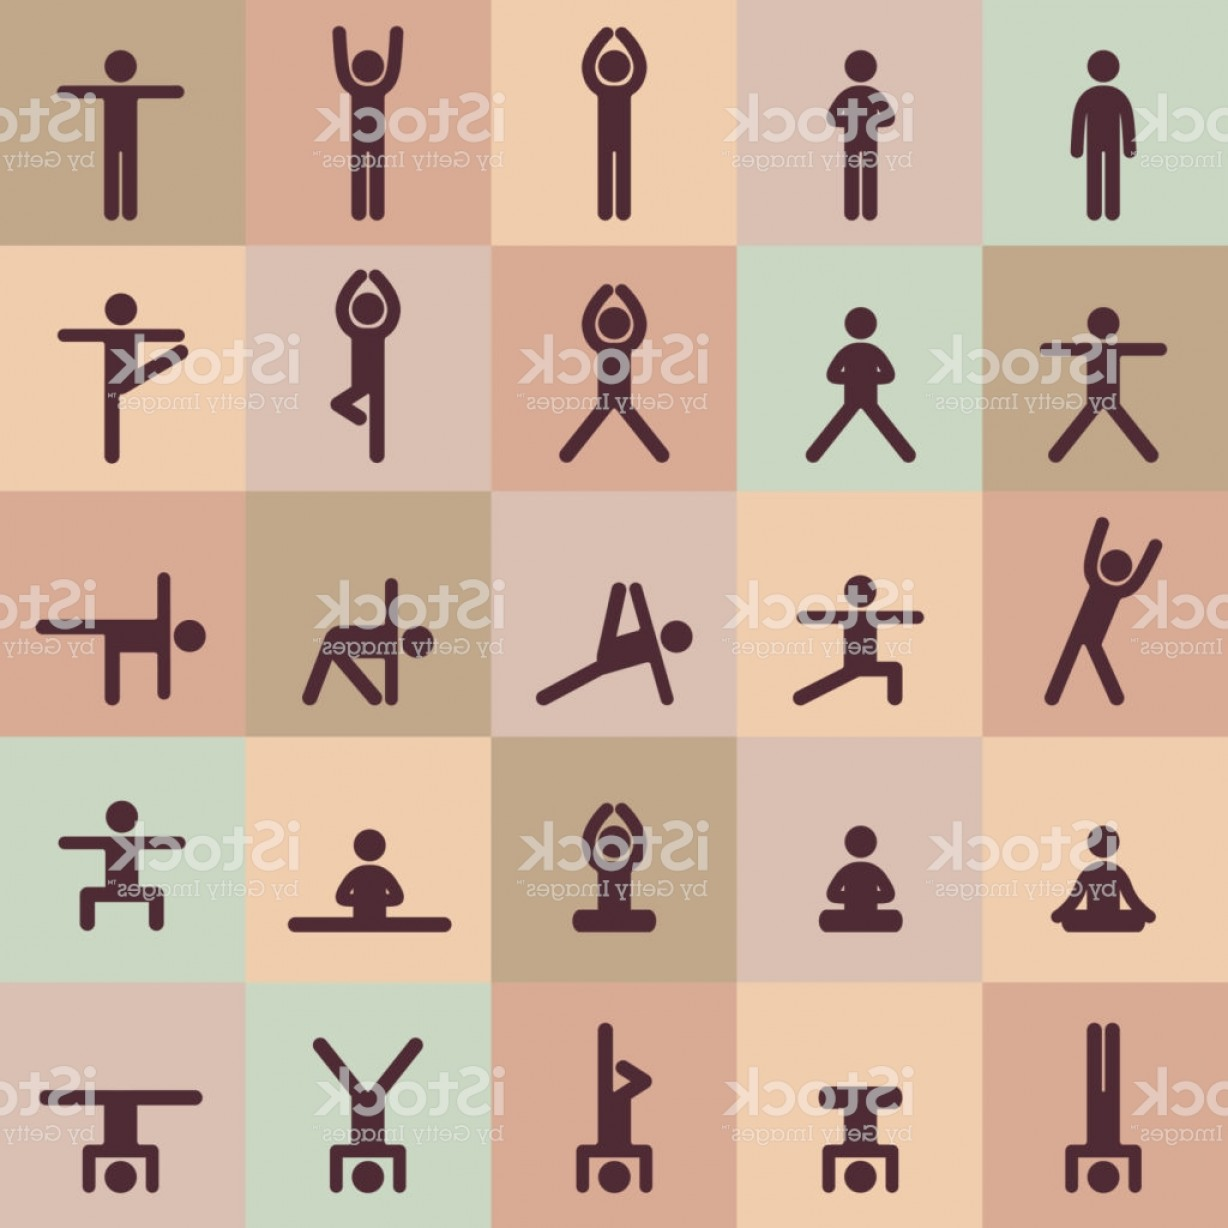 Vector Stick Figure Yoga Positions: Yoga Poses Asanas Icons Set Vector Illustrations For Logo Yoga Branding Yoga People Gm